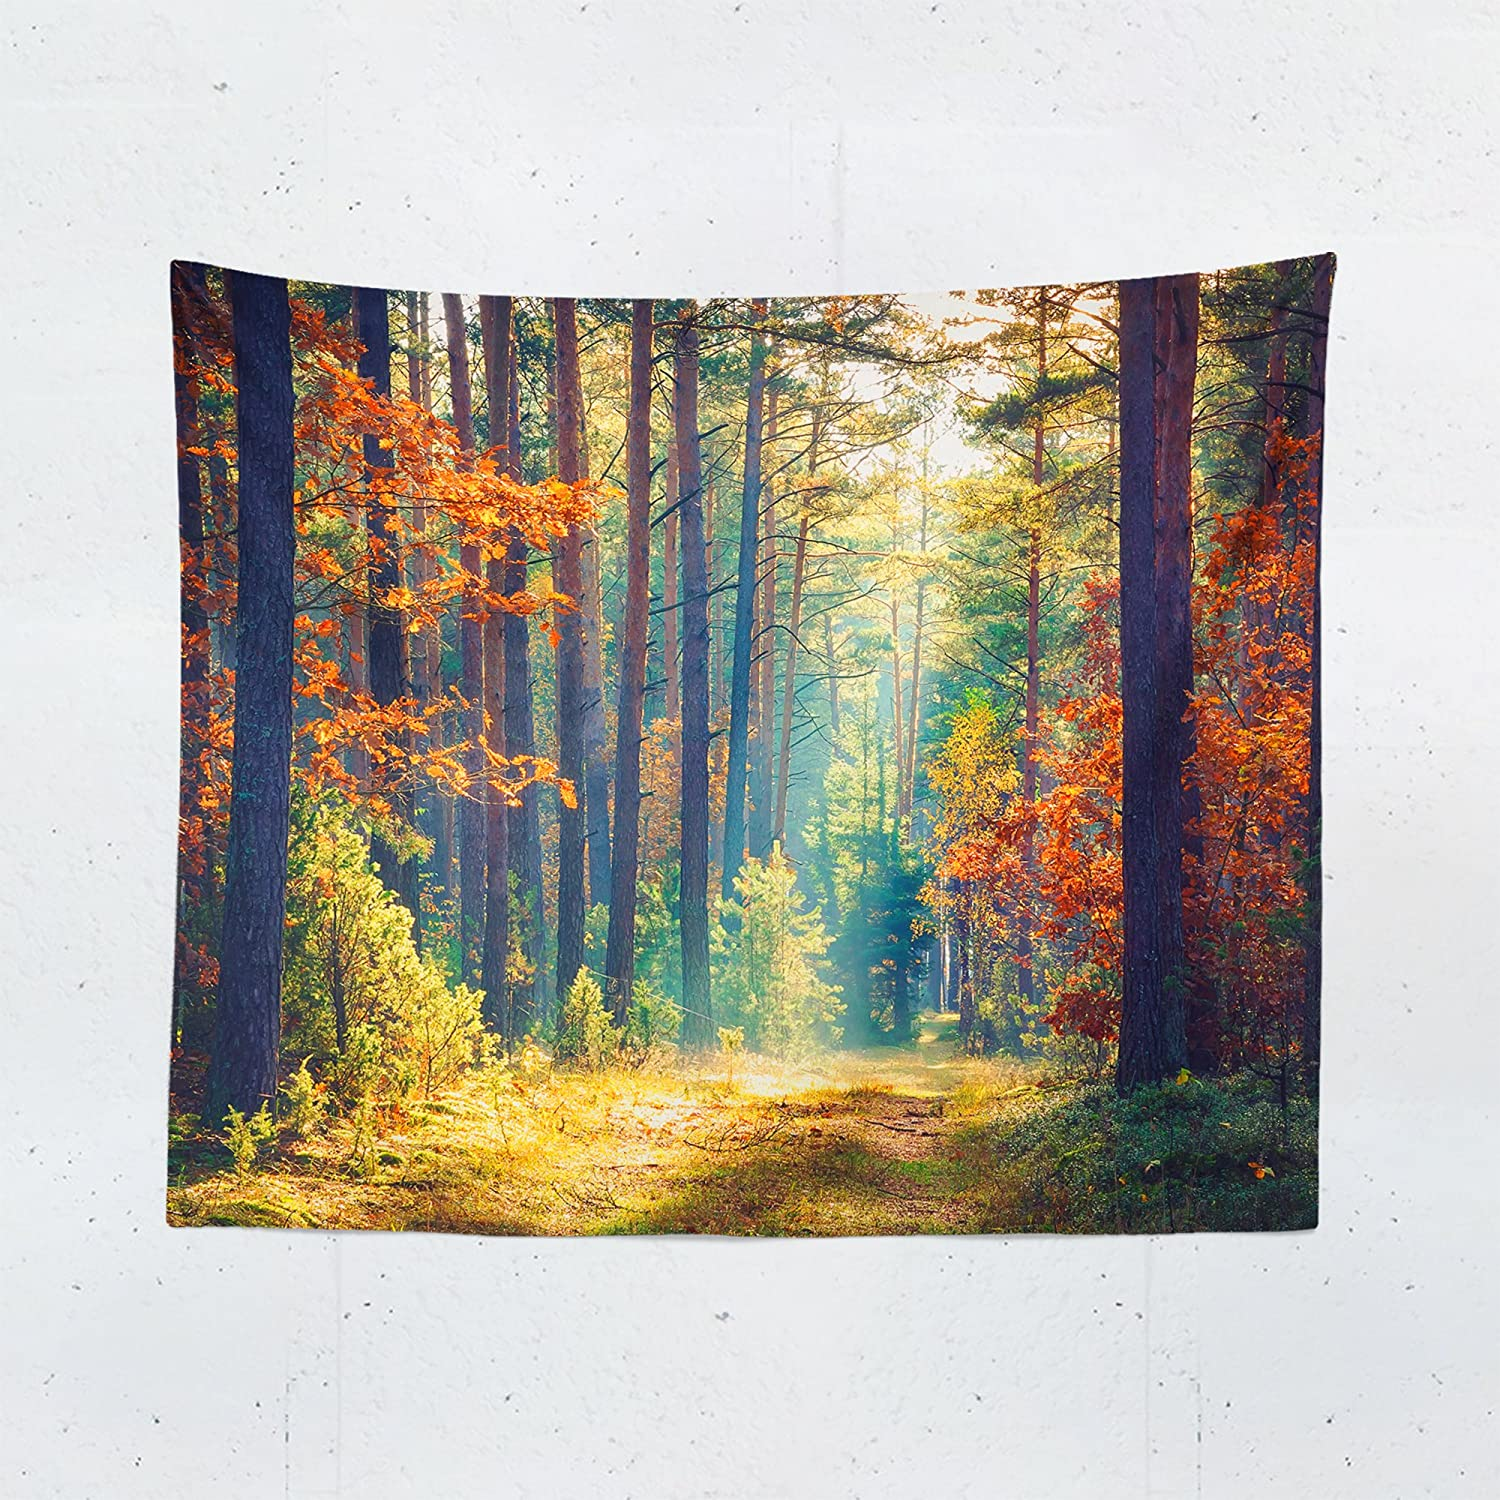 Forest Path Tapestry - Autumn Pathway Beautiful Scenic Wall Tapestries Hanging Décor Bedroom Dorm College Living Room Home Art Print Decoration Decorative - Printed in the USA